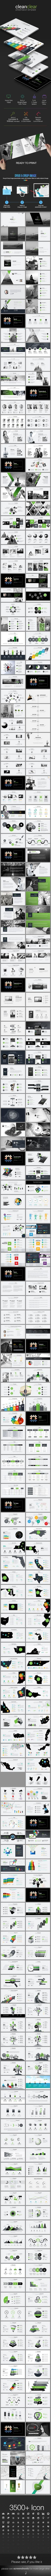 Cleanclear Presentation Template — Keynote KEY #corporate #practical • Download ➝ https://graphicriver.net/item/cleanclear-presentation-template/18660350?ref=pxcr